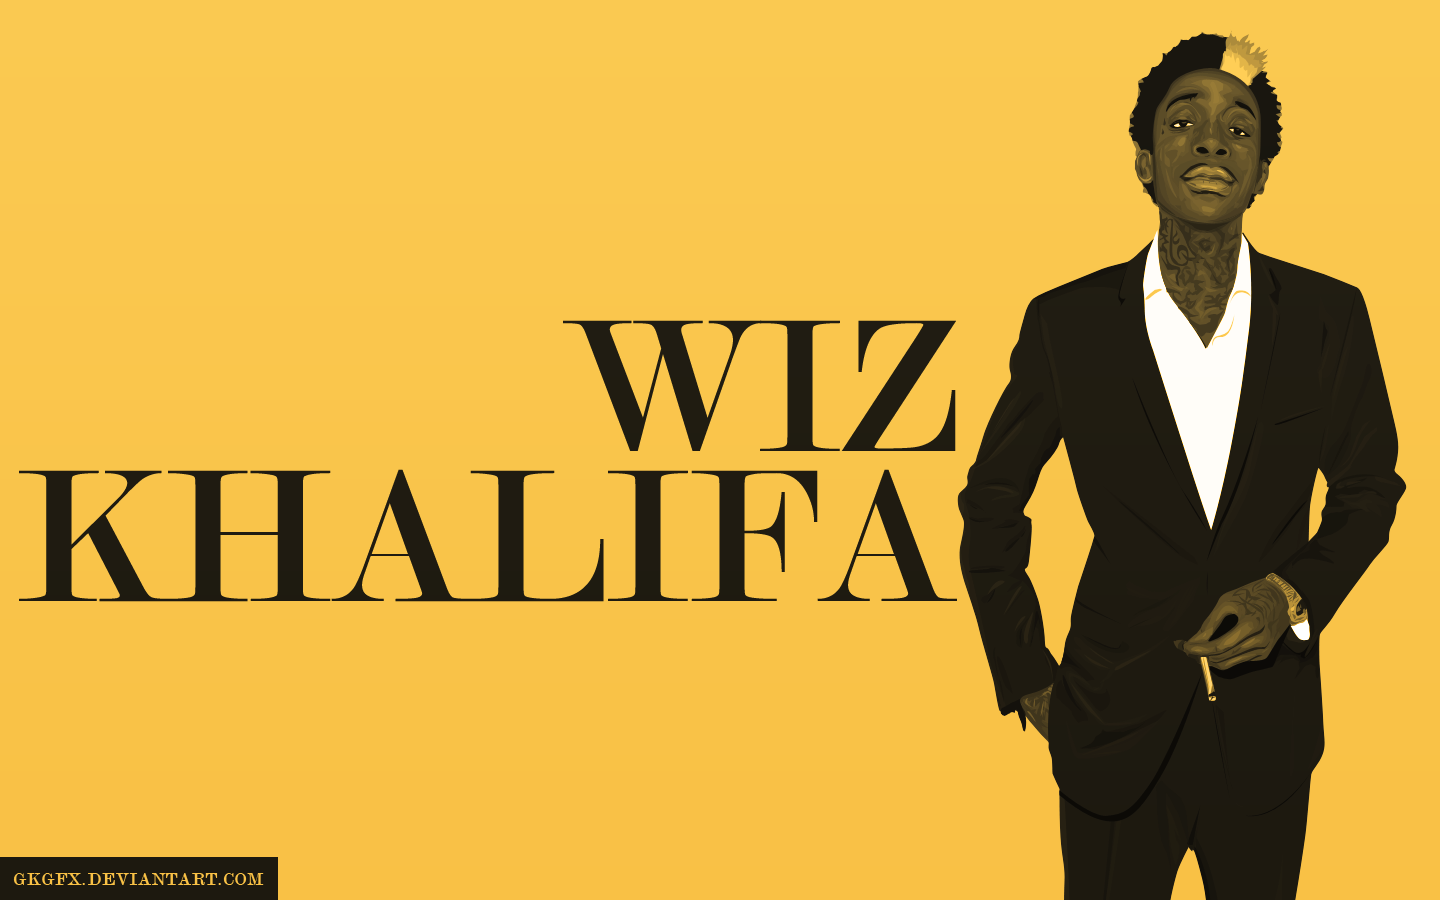 wiz khalifa Listen to music by wiz khalifa for free on vevo, including official music videos, top songs, new releases, and live performances.